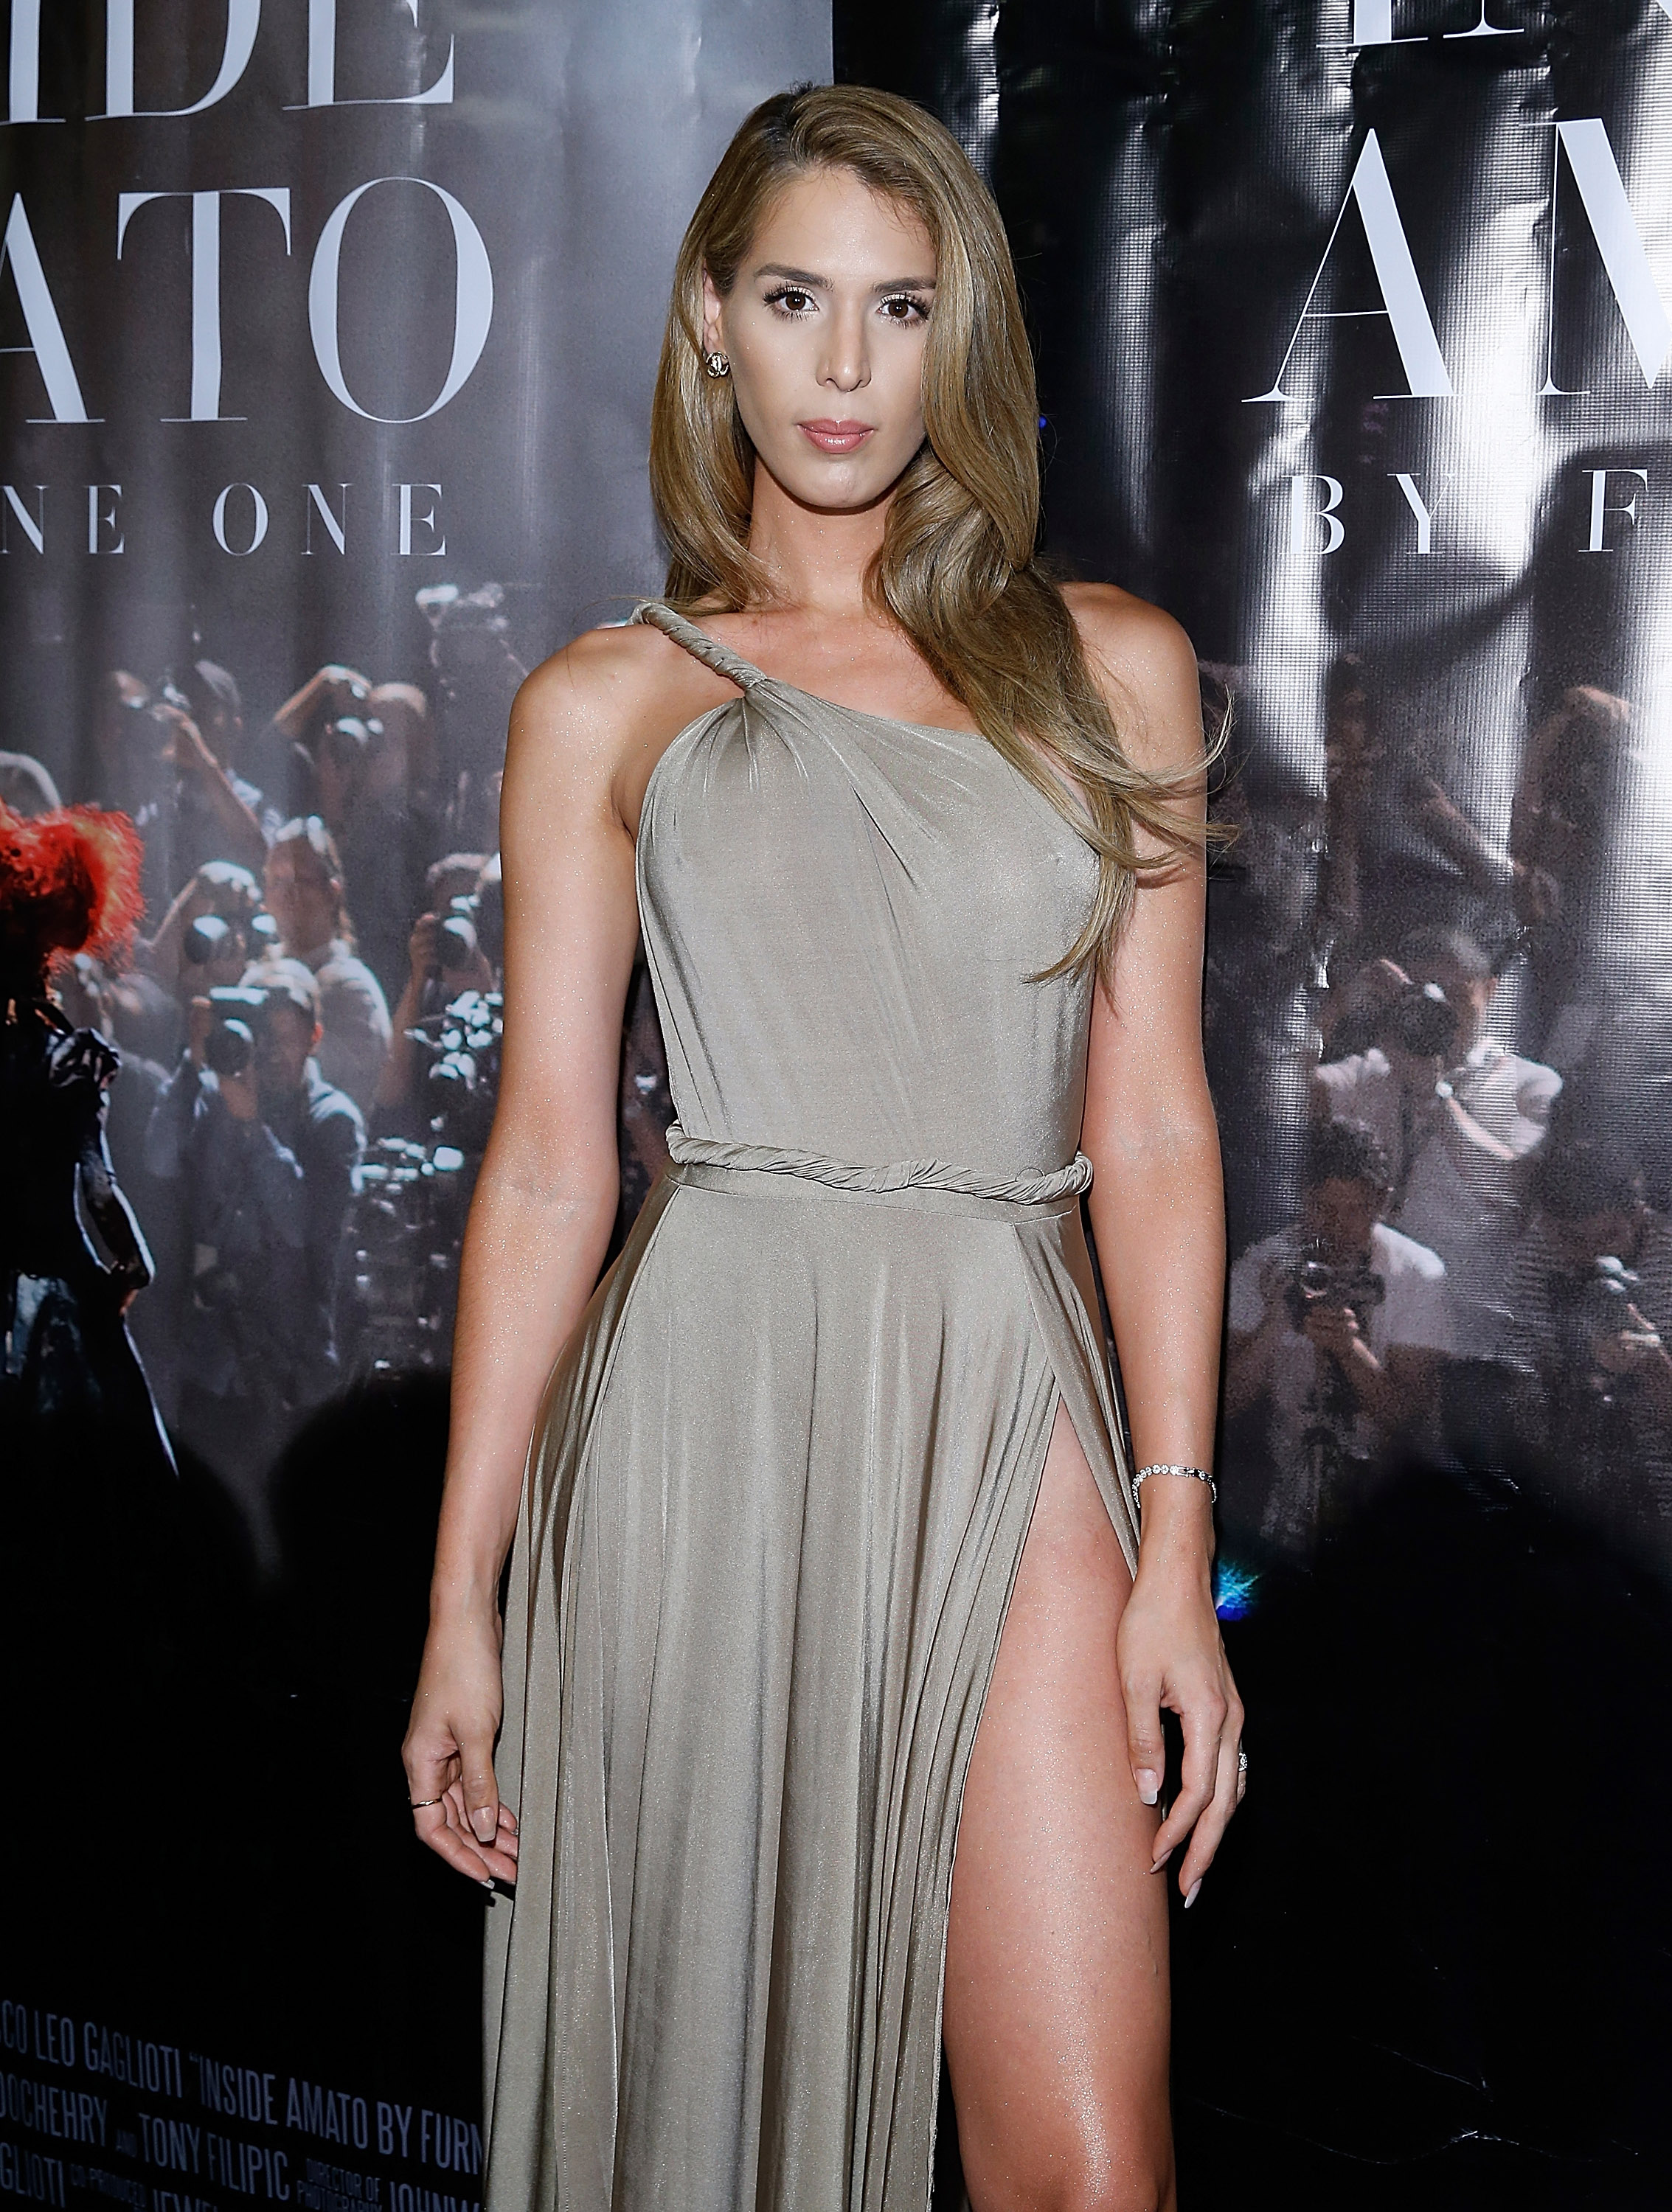 Carmen Carrera is seen on Sept. 16, 2015 in New York City.